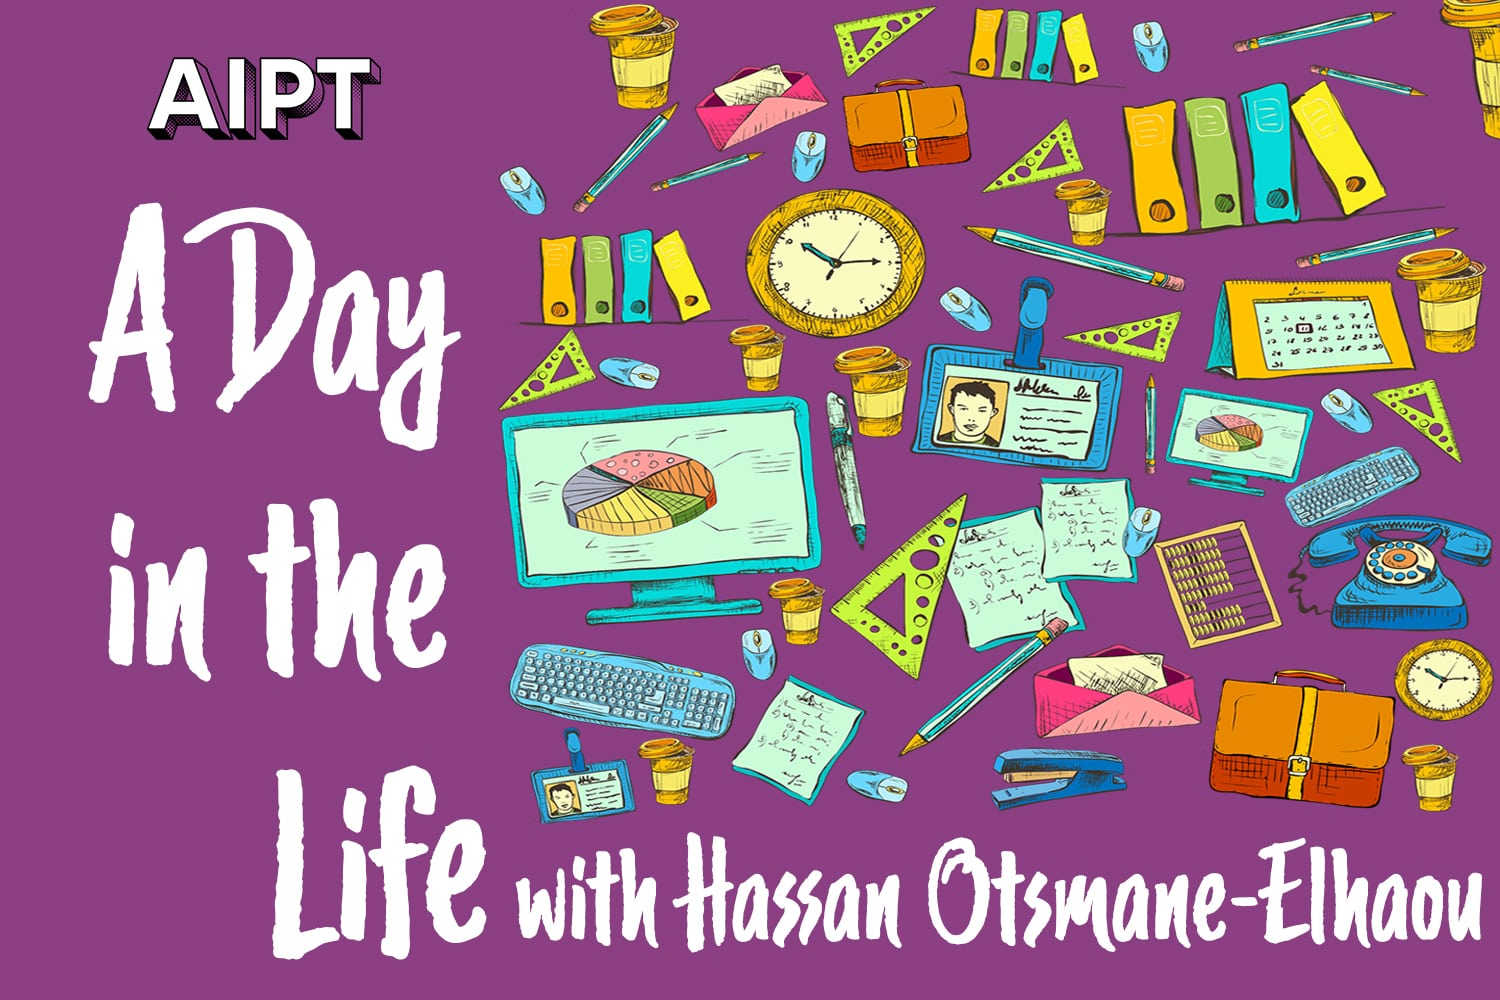 Day in the Life: Hassan Otsmane-Elhaou